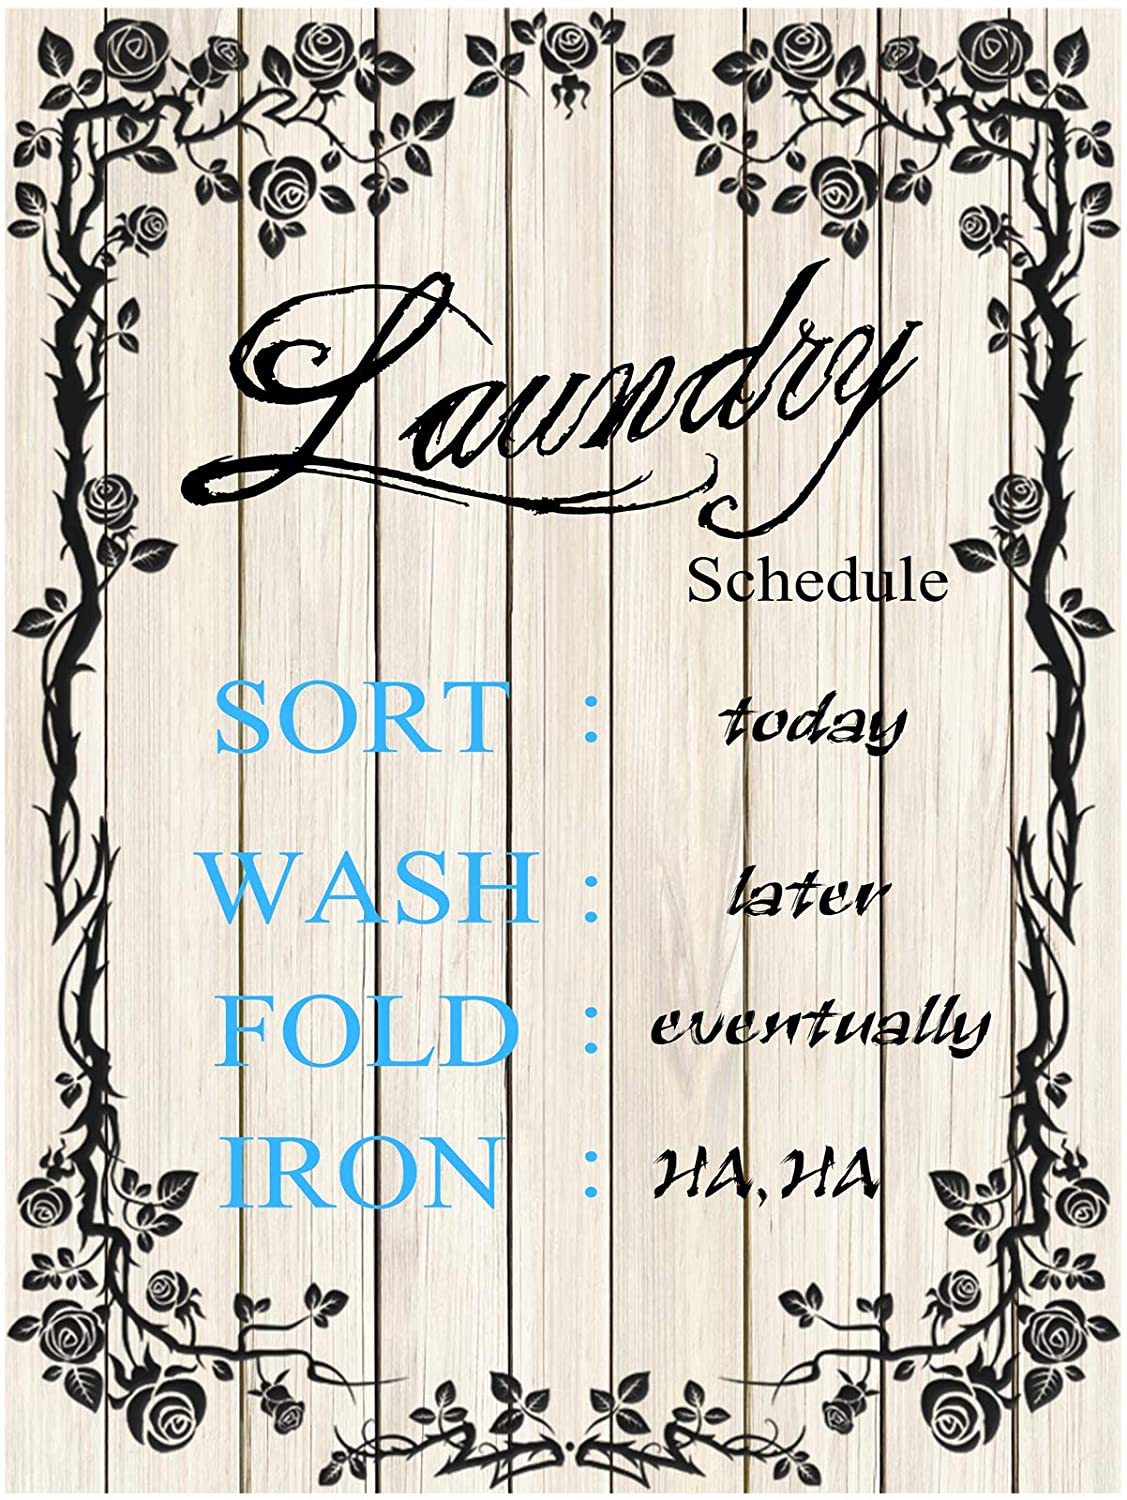 Original Retro Design Laundry Schedule Solid Wood Signs Wall Art|Natural Wooden Board Painting Wall Decoration for Laundry Room